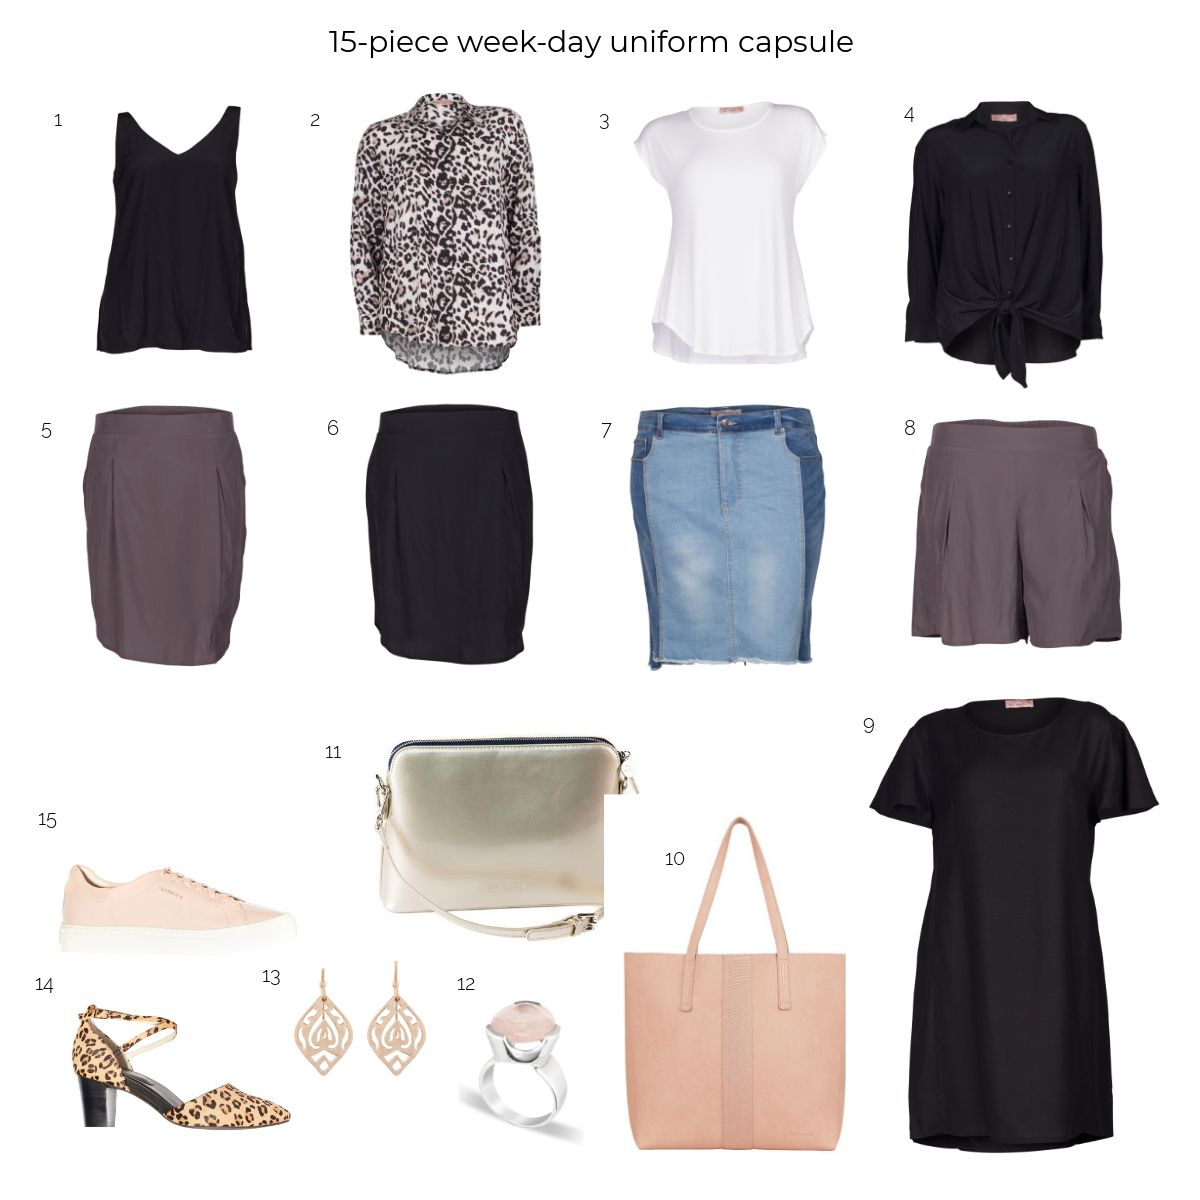 15-piece week-day uniform capsule